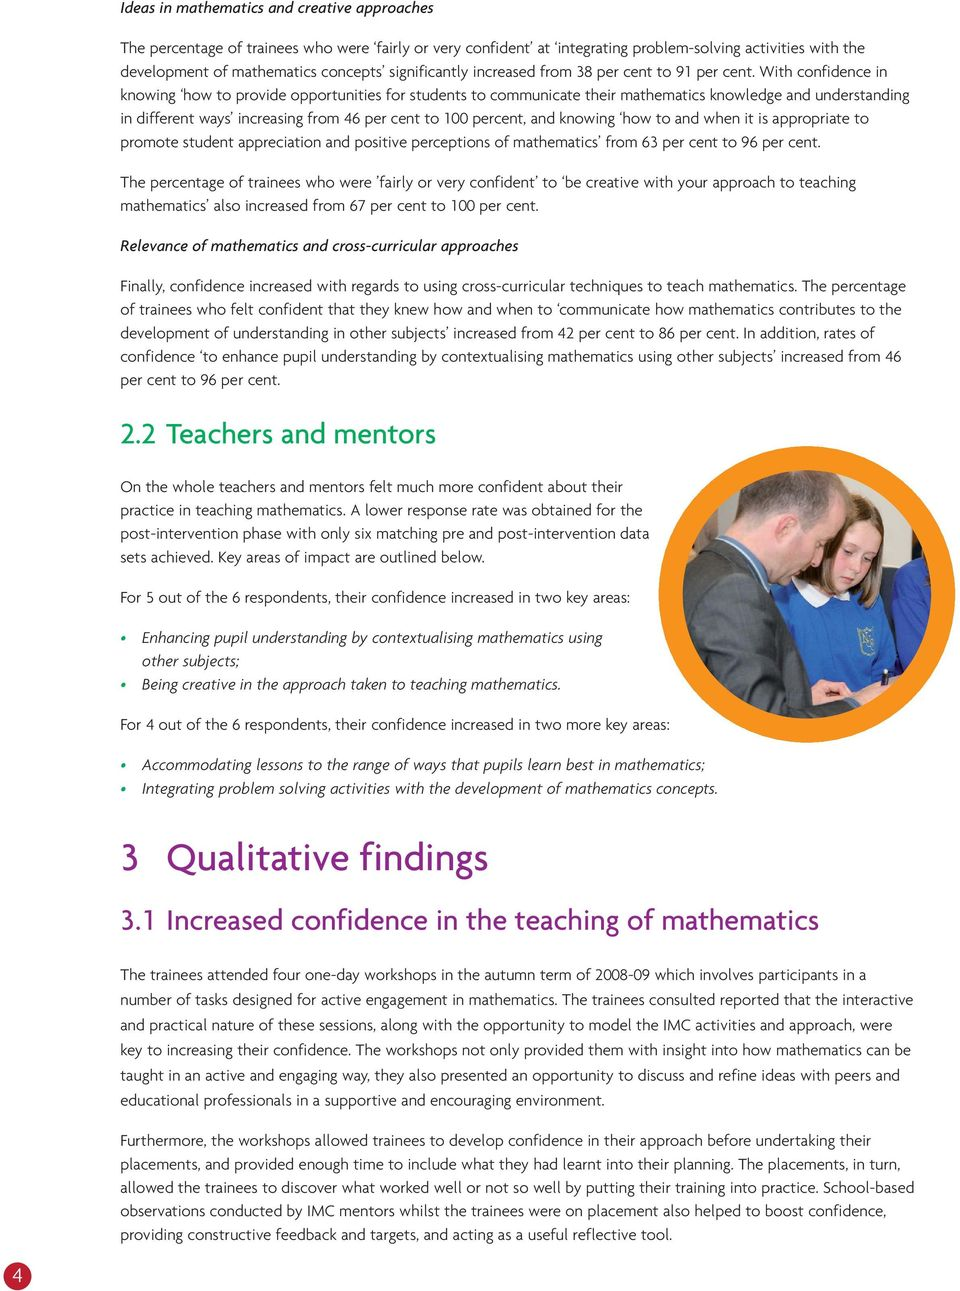 With confidence in knowing how to provide opportunities for students to communicate their mathematics knowledge and understanding in different ways increasing from 46 per cent to 100 percent, and